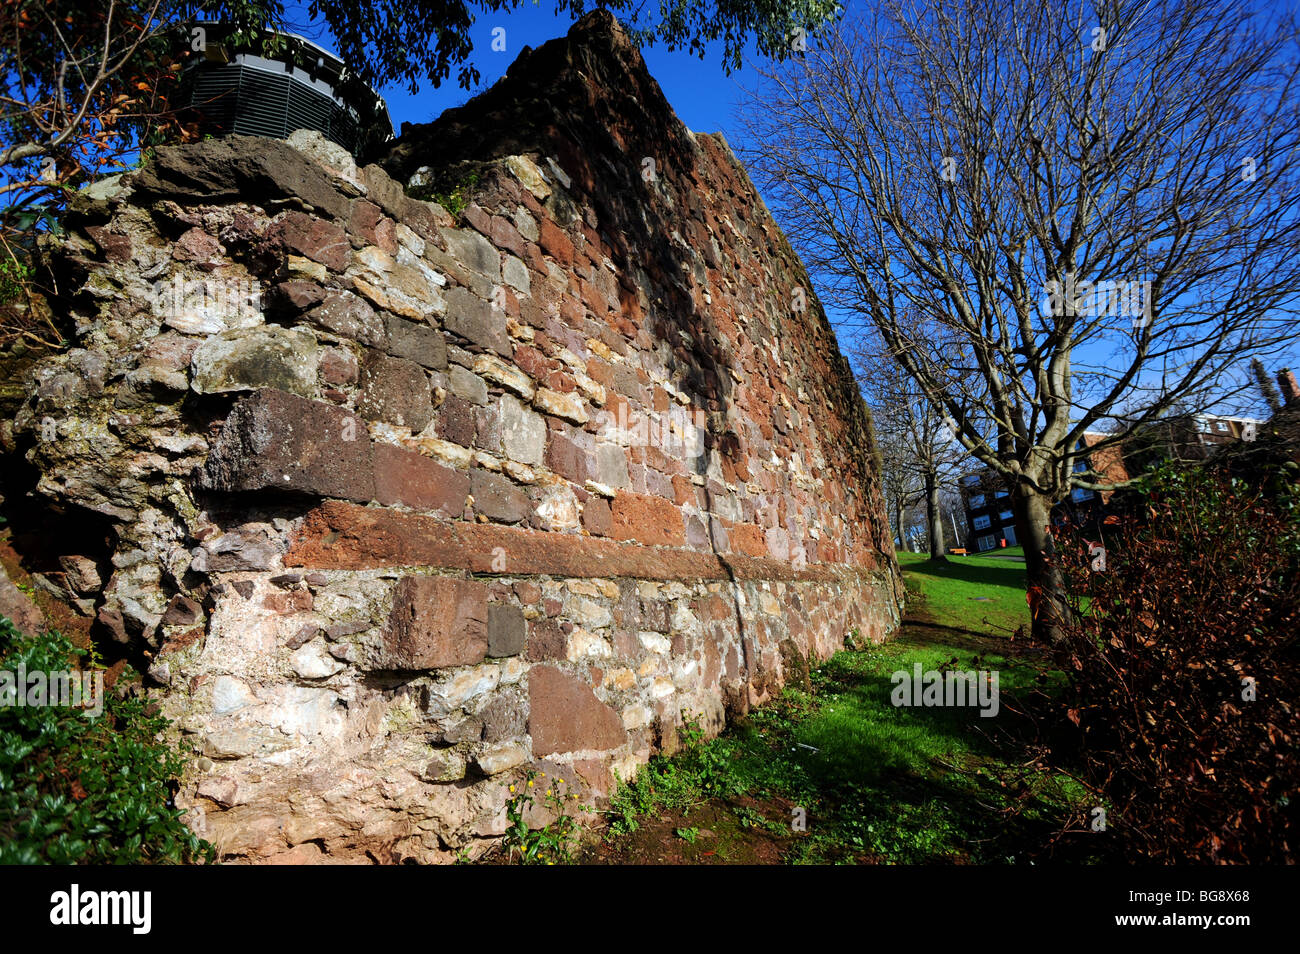 Remains of the old city wall in exeter built by the romans - Stock Image